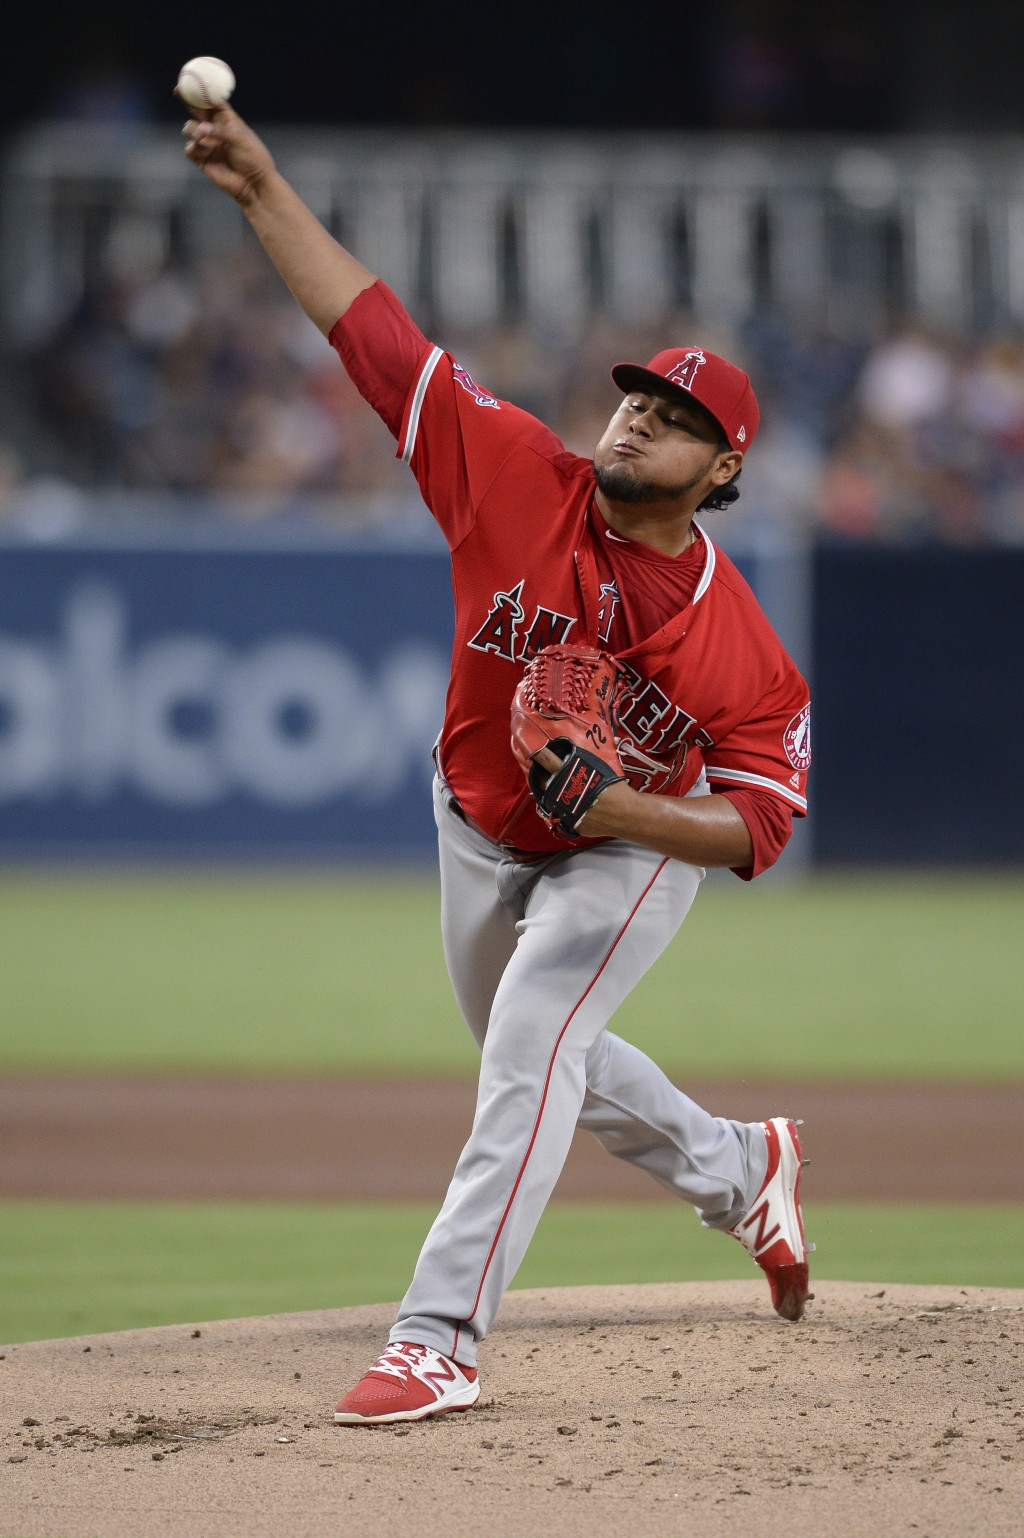 Los Angeles Angels starting pitcher Jaime Barria works against a San Diego Padres batter during the first inning of a baseball game Tuesday, Aug. 14, ...